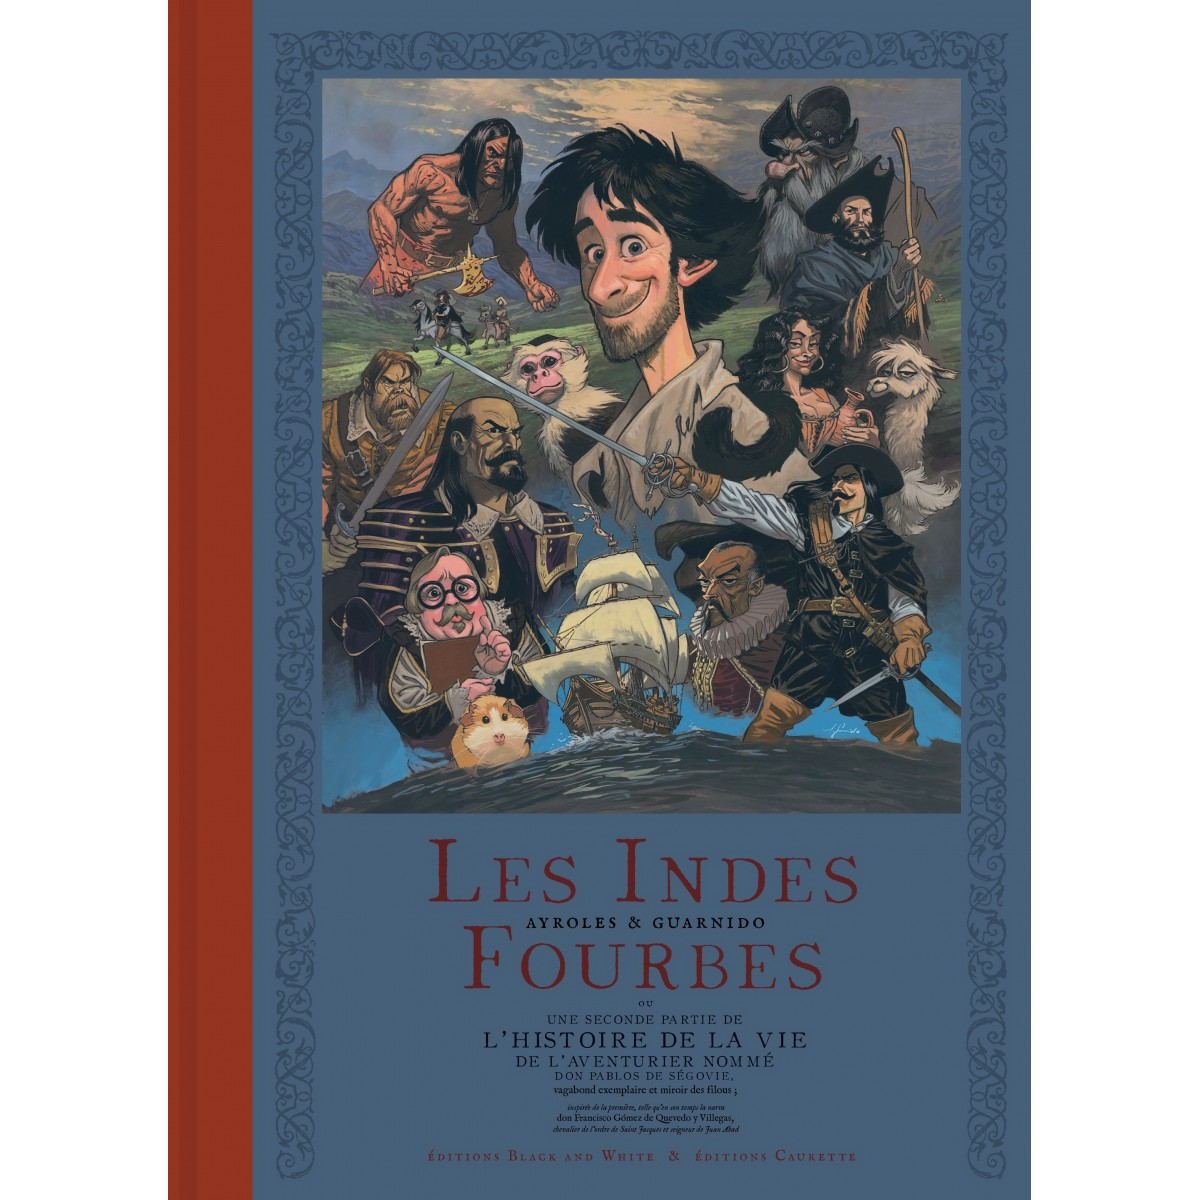 Les Indes Fourbes - French Artist's Edition (Pre-order)